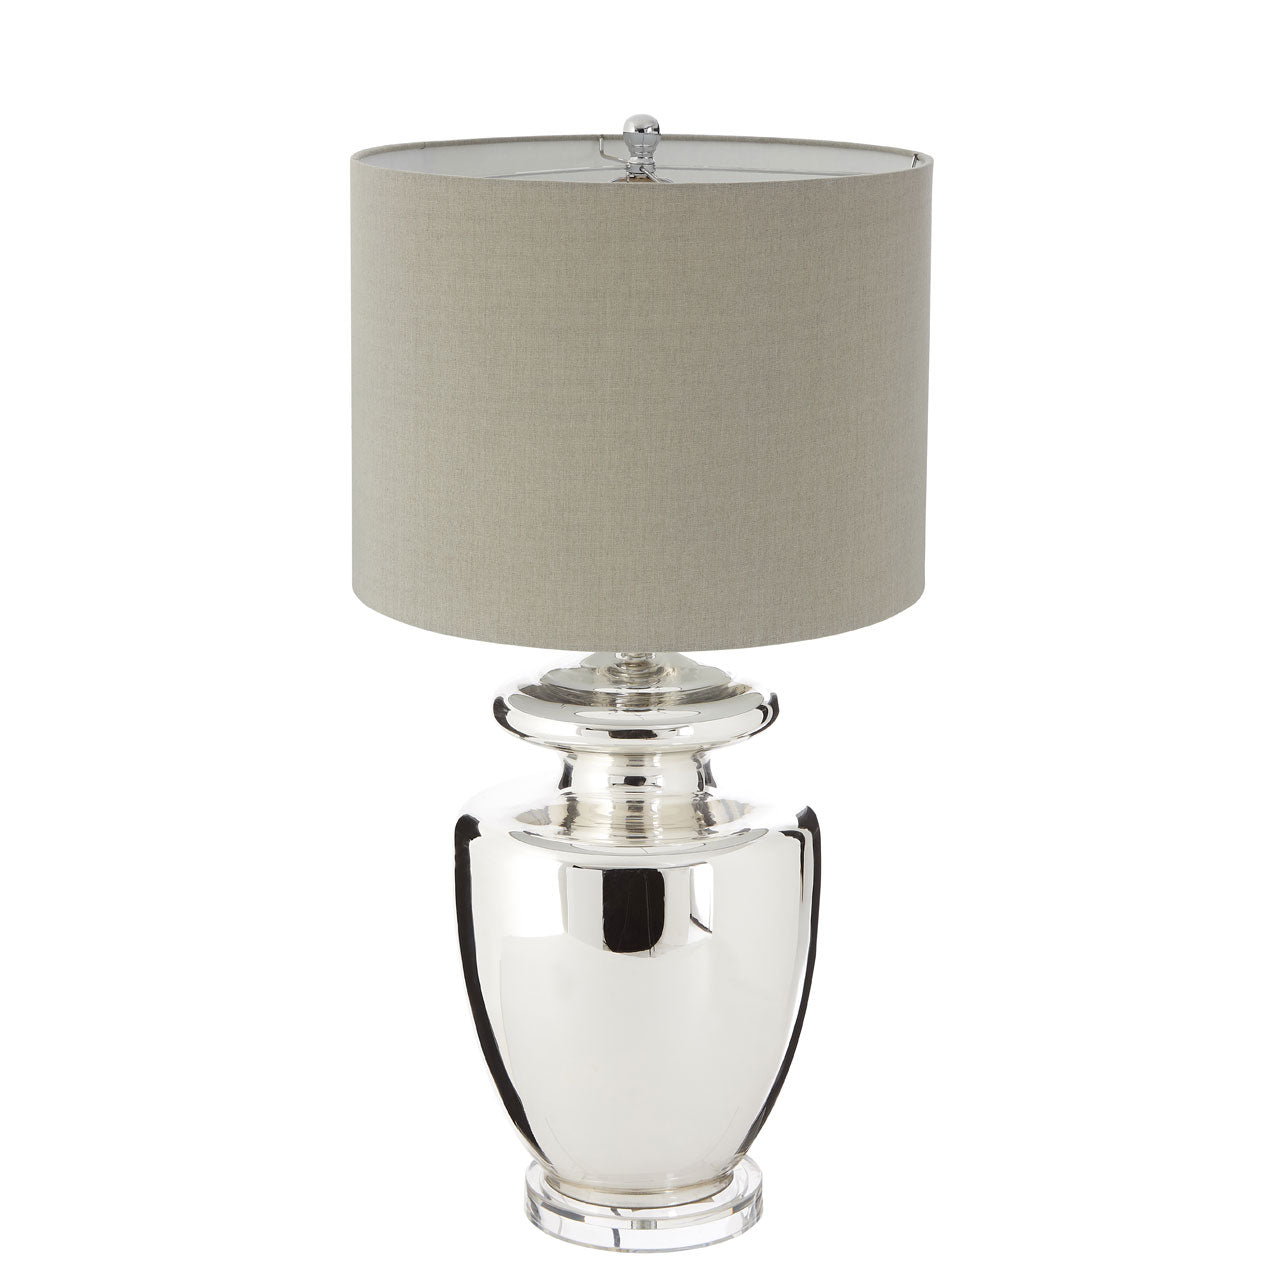 Auldwych Table Lamp - Ezzo